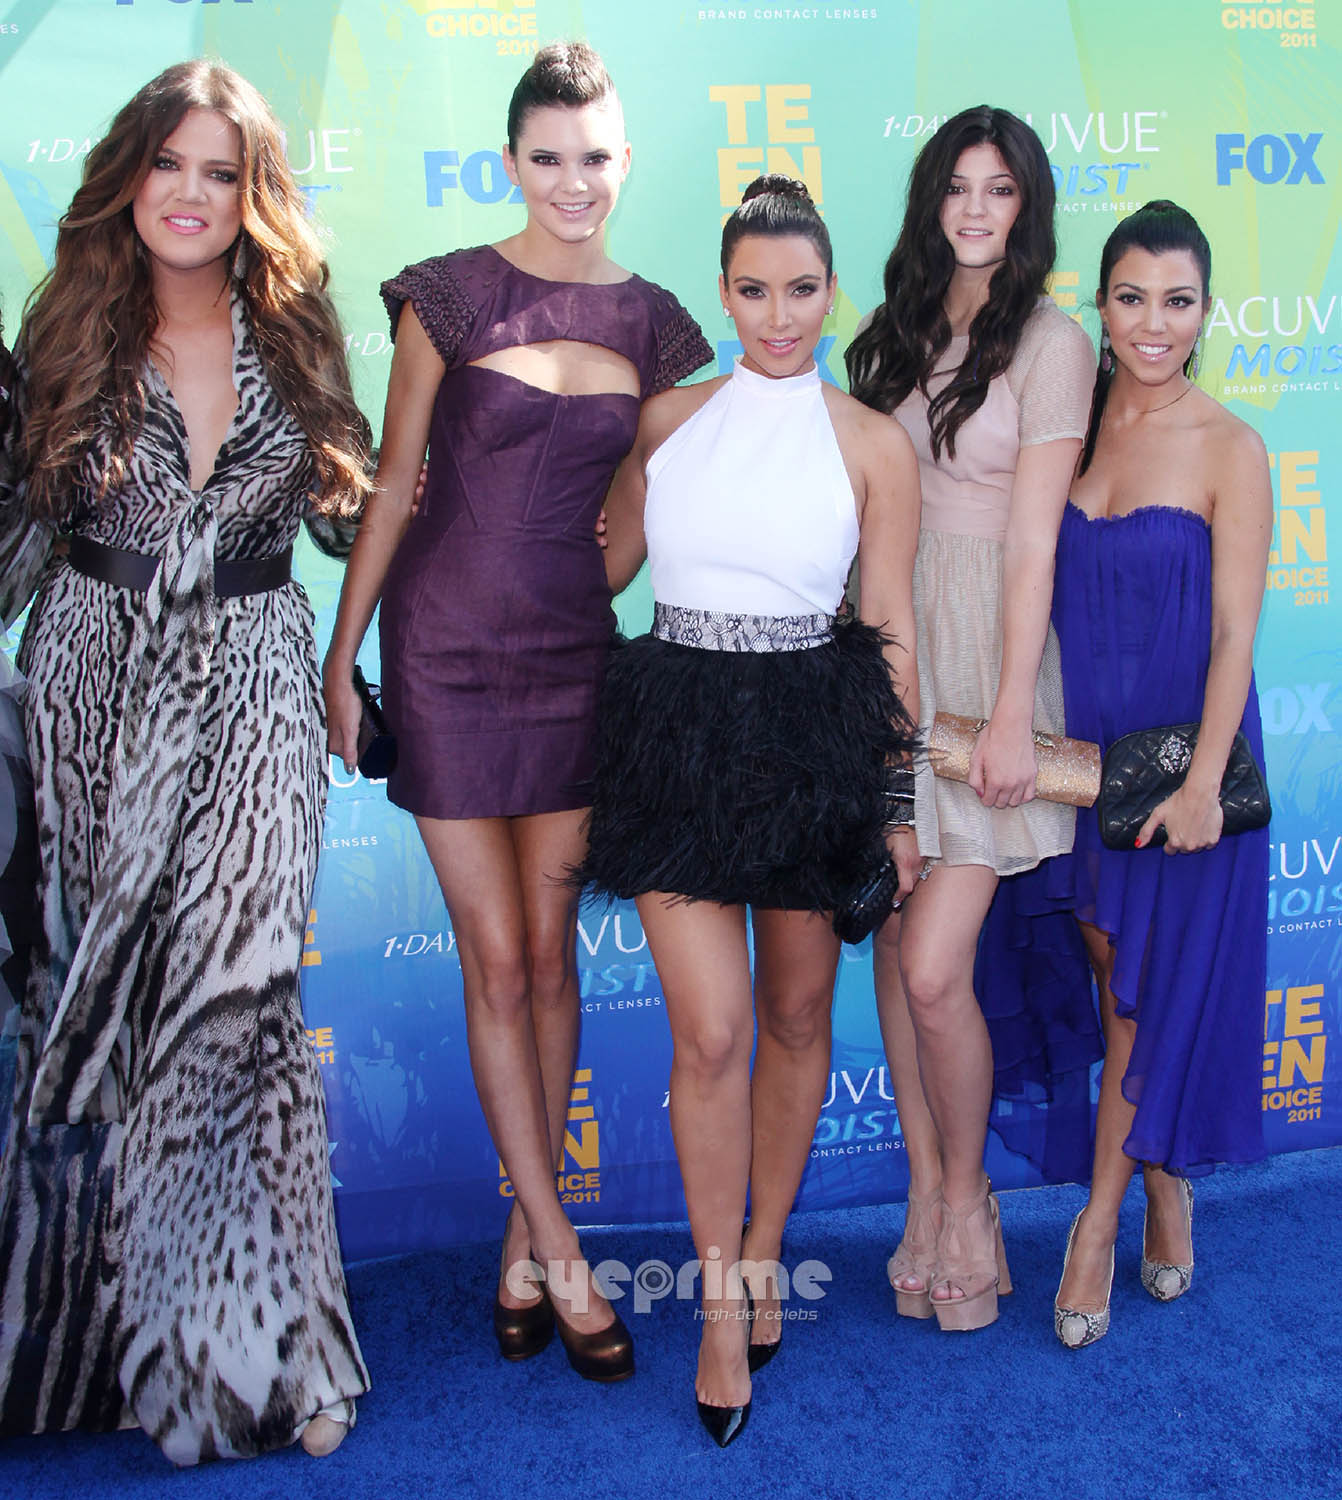 Kendall and Kylie Jenner: 2011 Teen Choice Awards in L.A, Aug 7